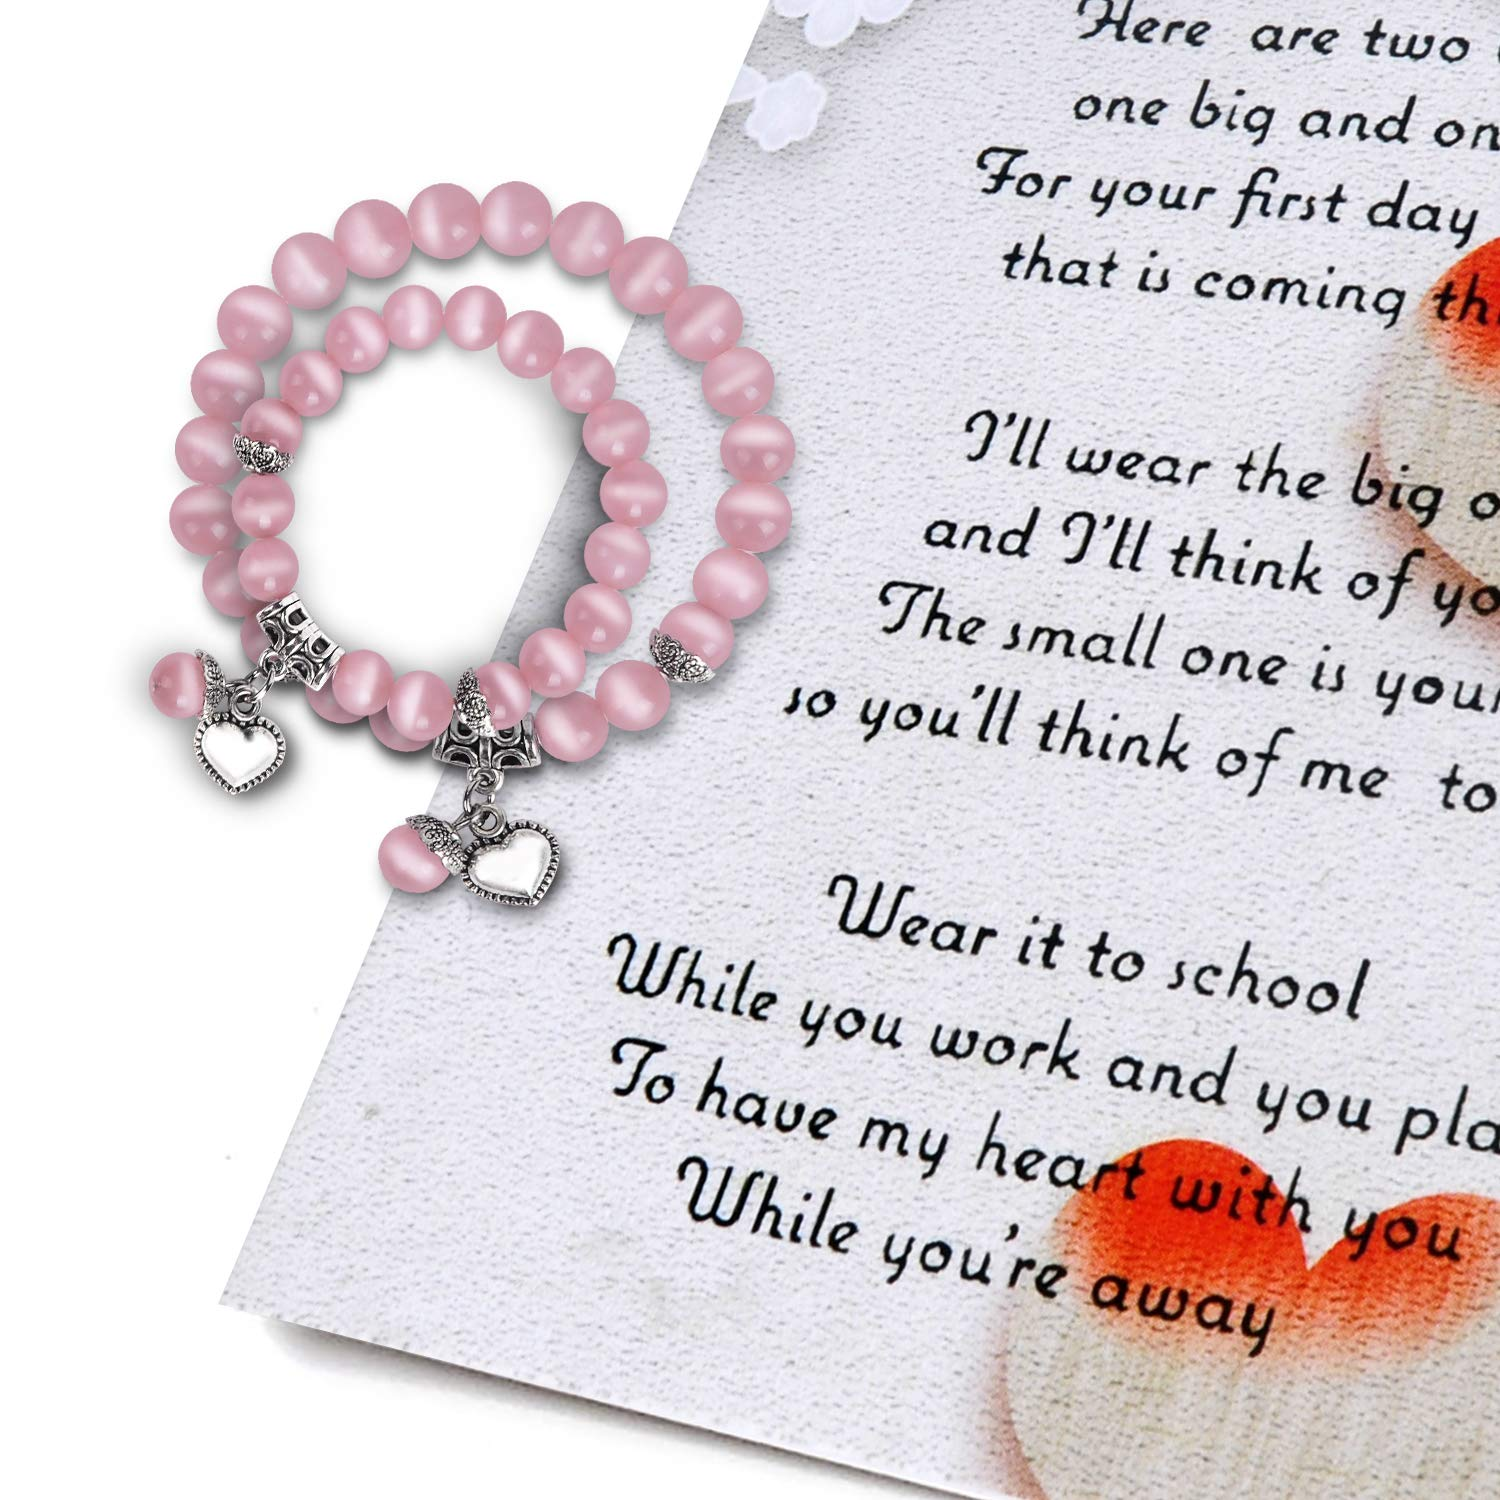 Back to School Gifts - First Day of School Mommy & Me Bracelets with Poem Card - Mother Daughter Matching Heart Bracelets Set for 2 - Anxiety Seperation Present Preschool Kindergarten by MORDUN